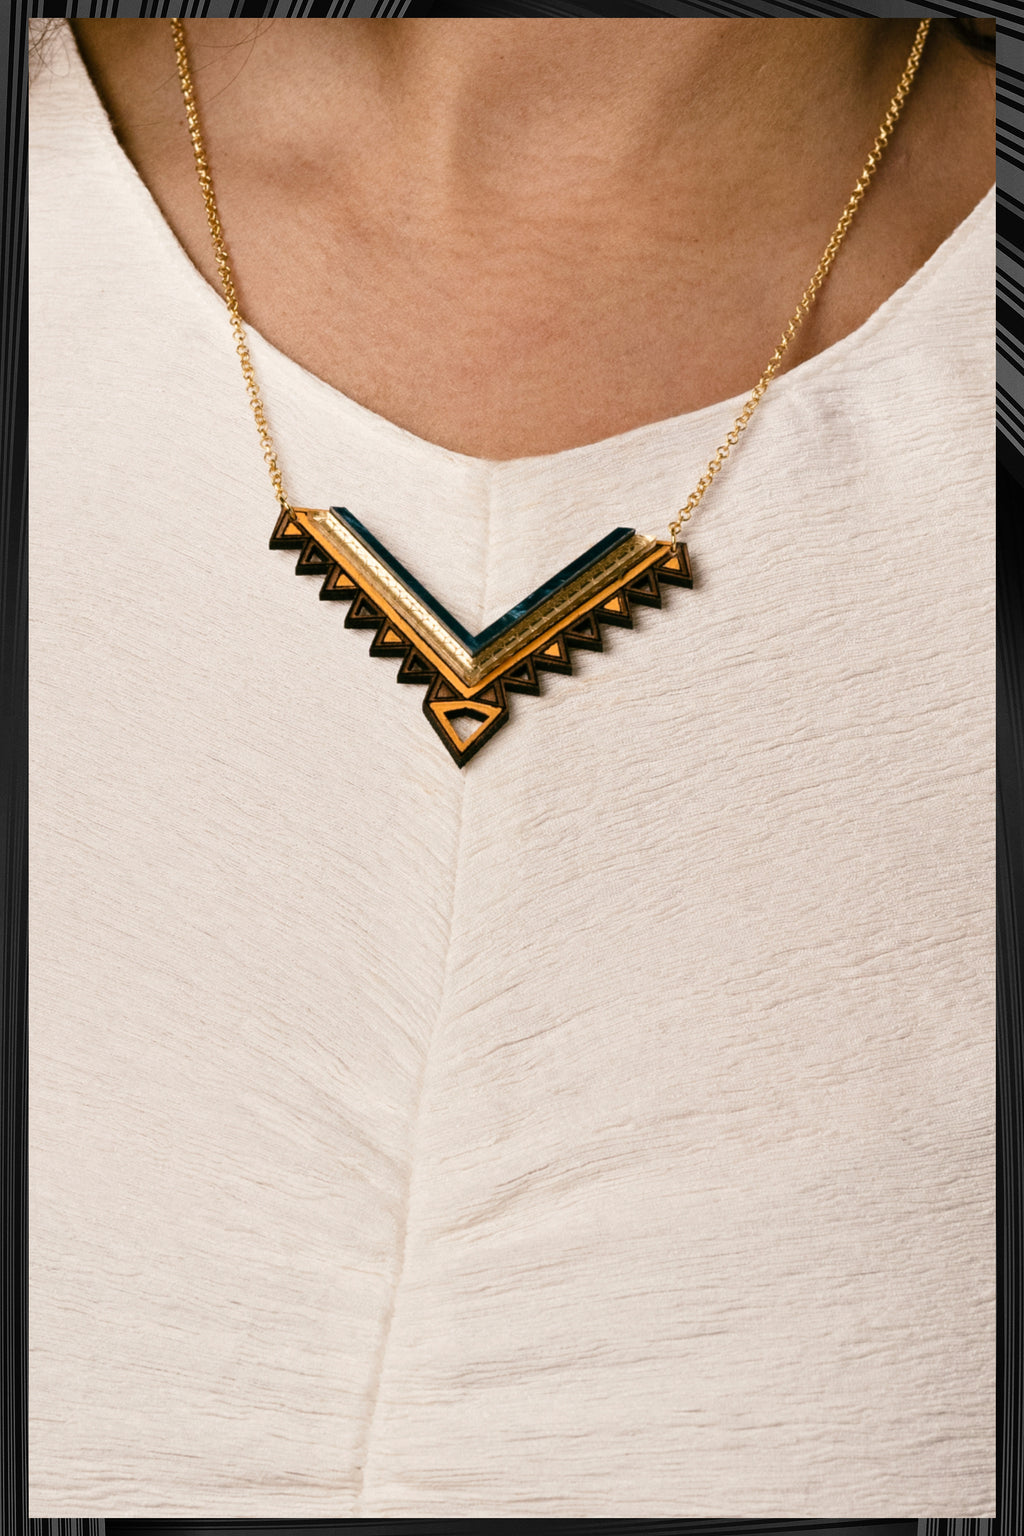 Veda Necklace | Free Delivery - 2-3 Week Shipping